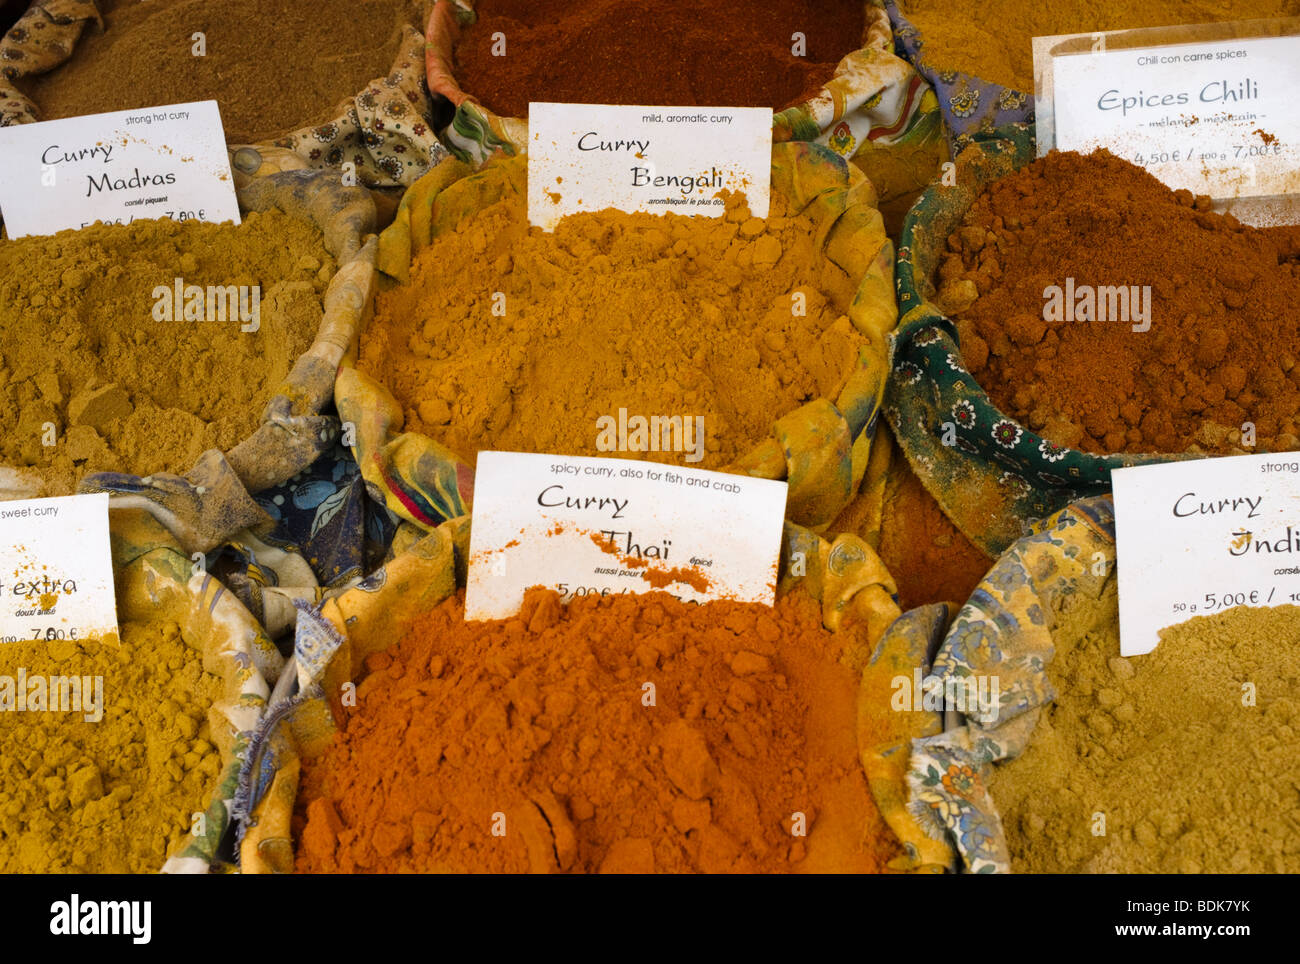 Spices for sale in a French country market - Stock Image